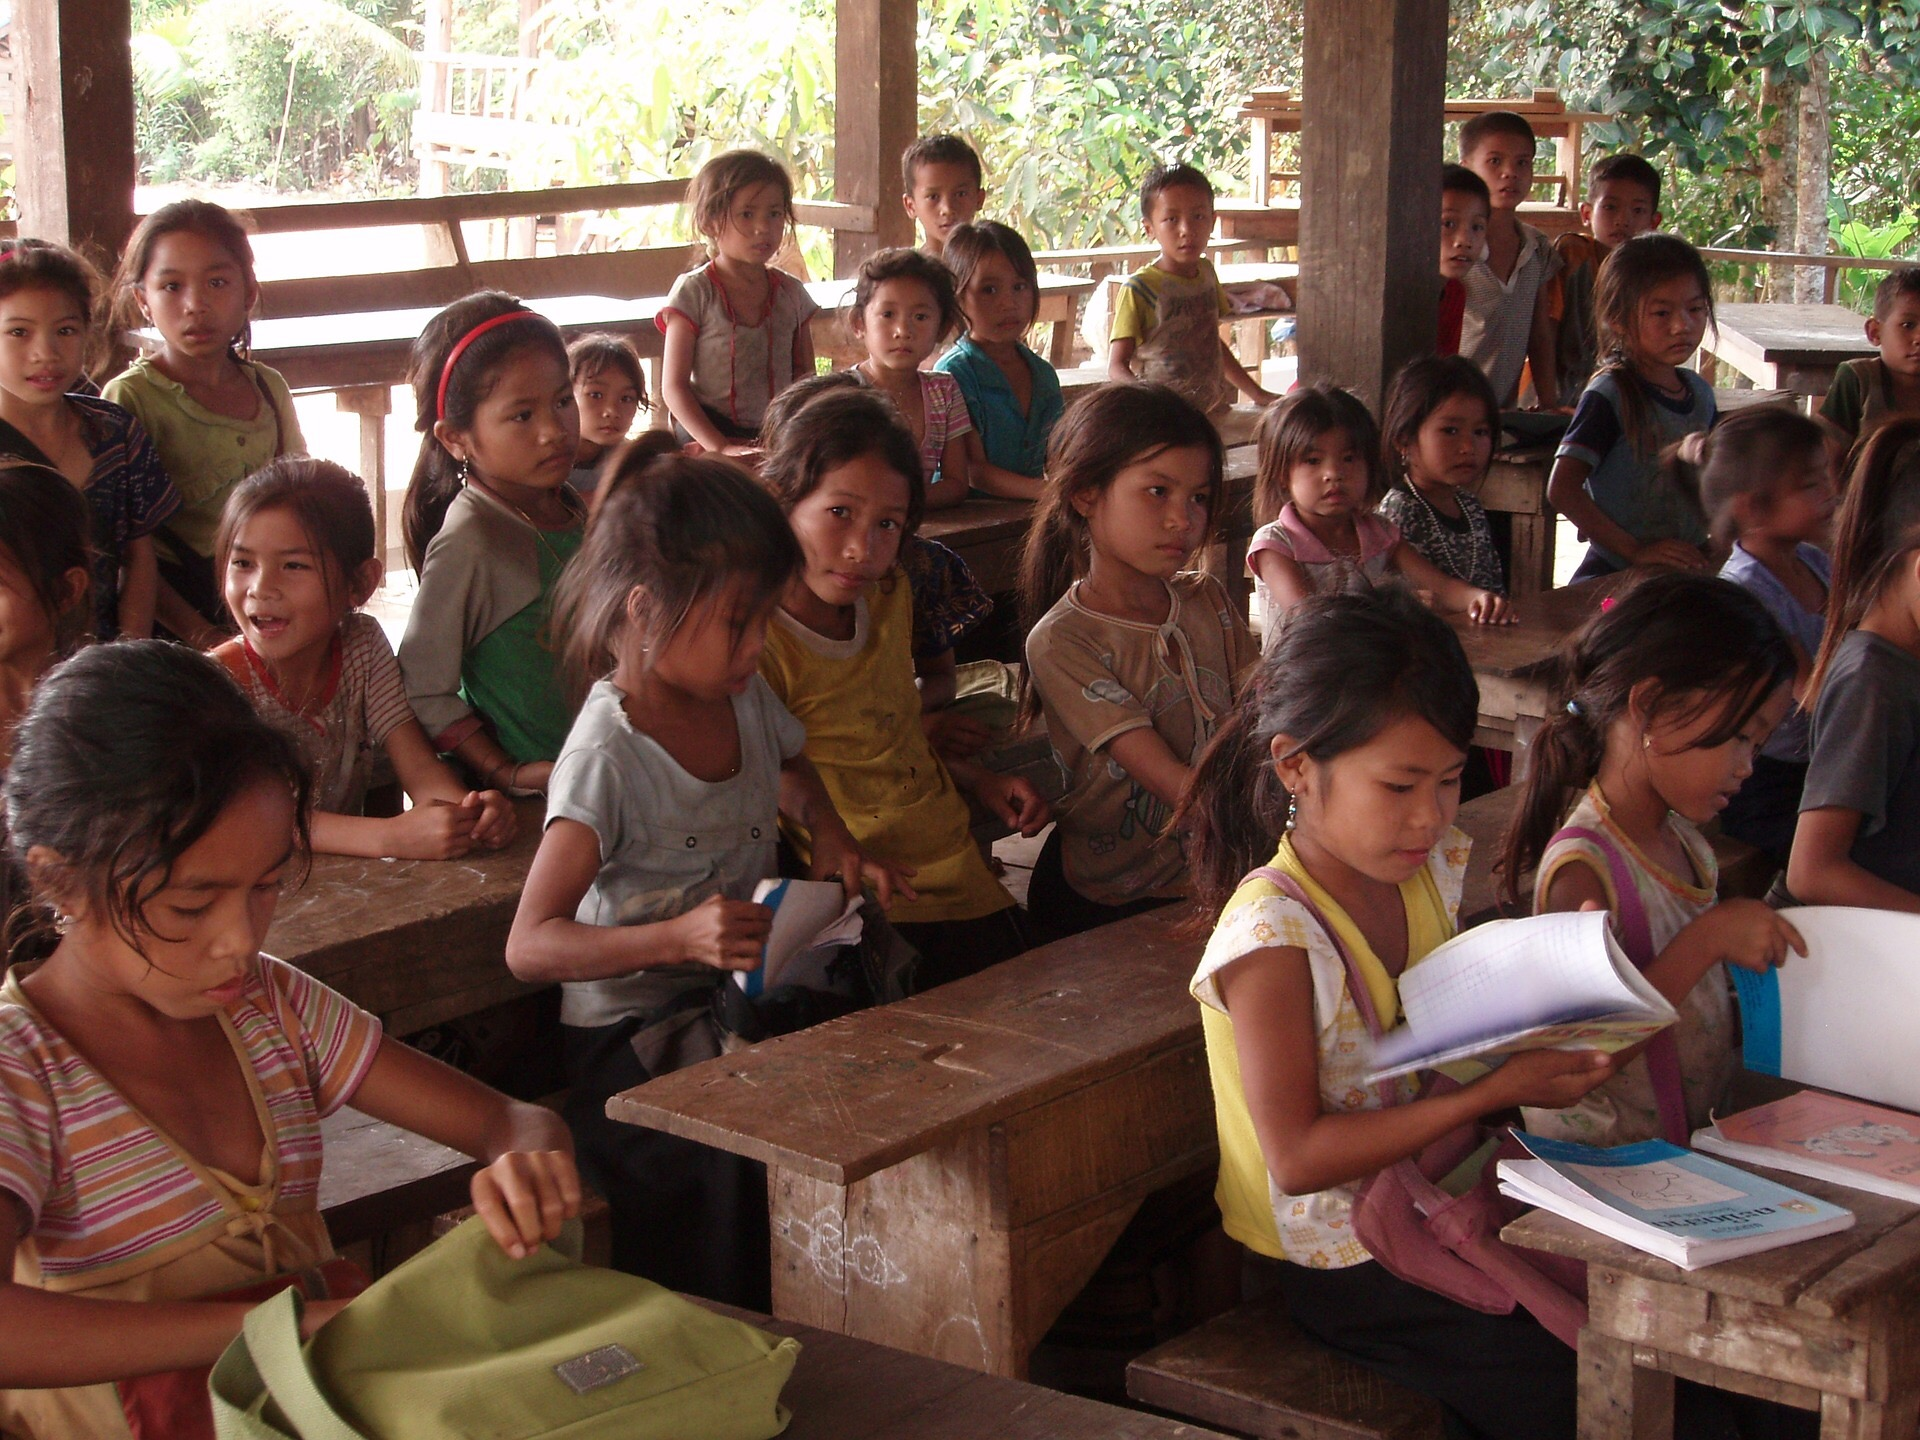 Global Primary school enrollment nearly doubled since 2015